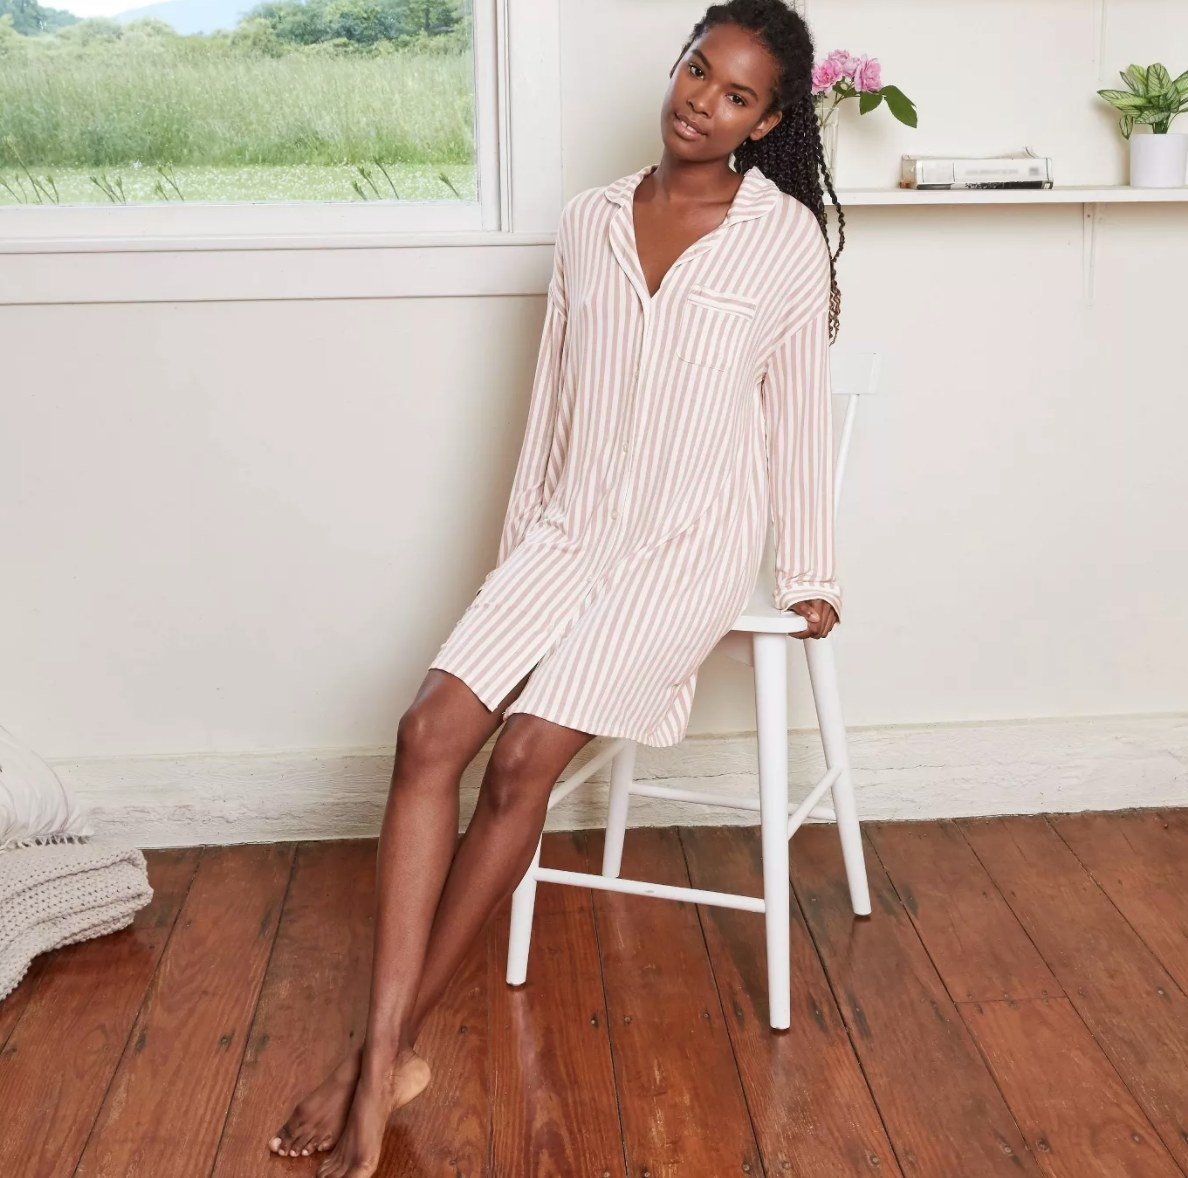 Model in the pink and white striped sleep dress